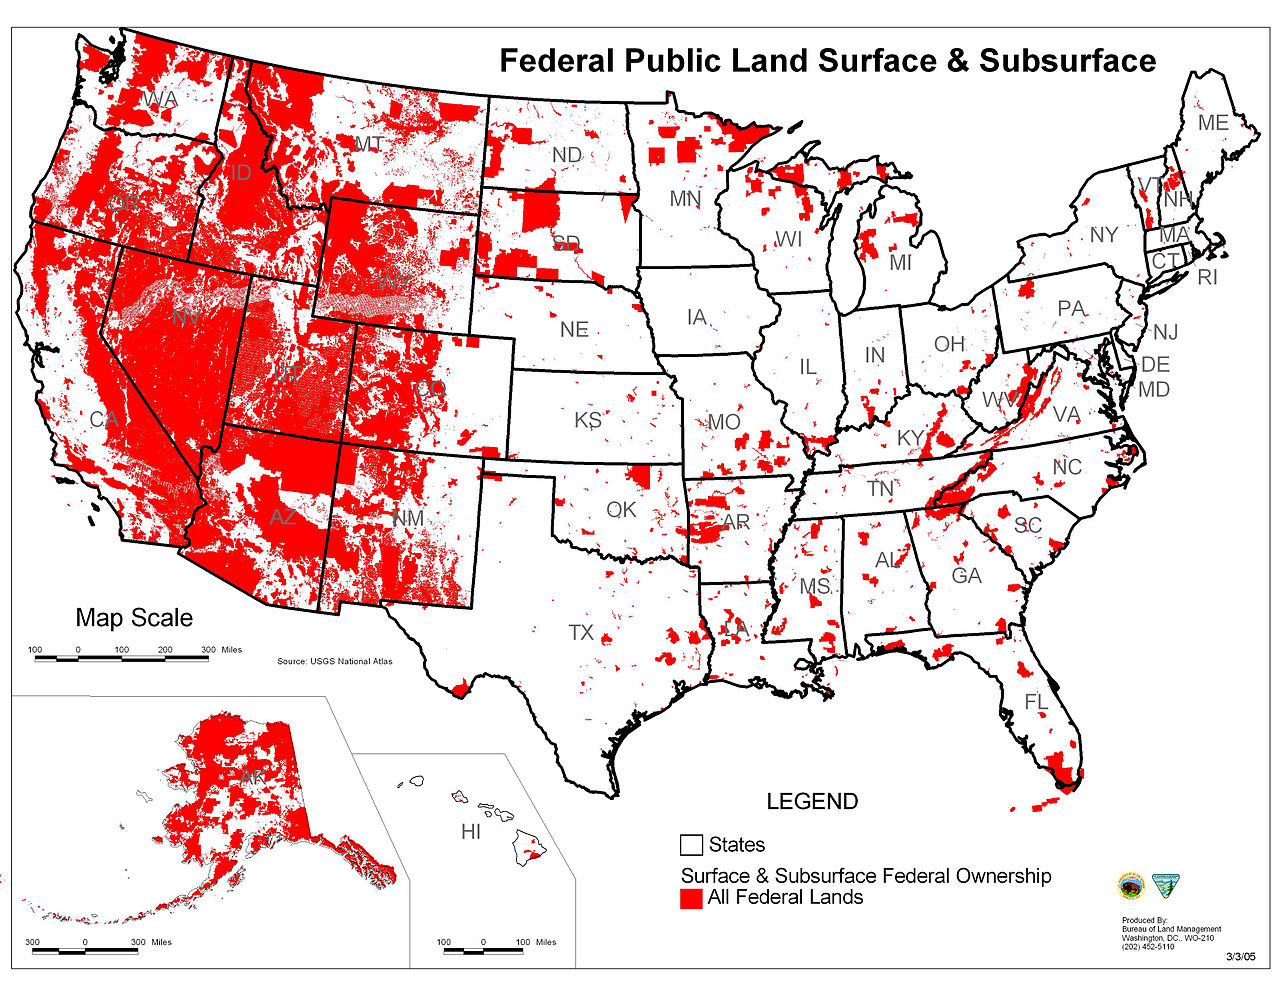 Map Showing Stunning Extent Of Federal Controlled Land - Texas Blm Land Map